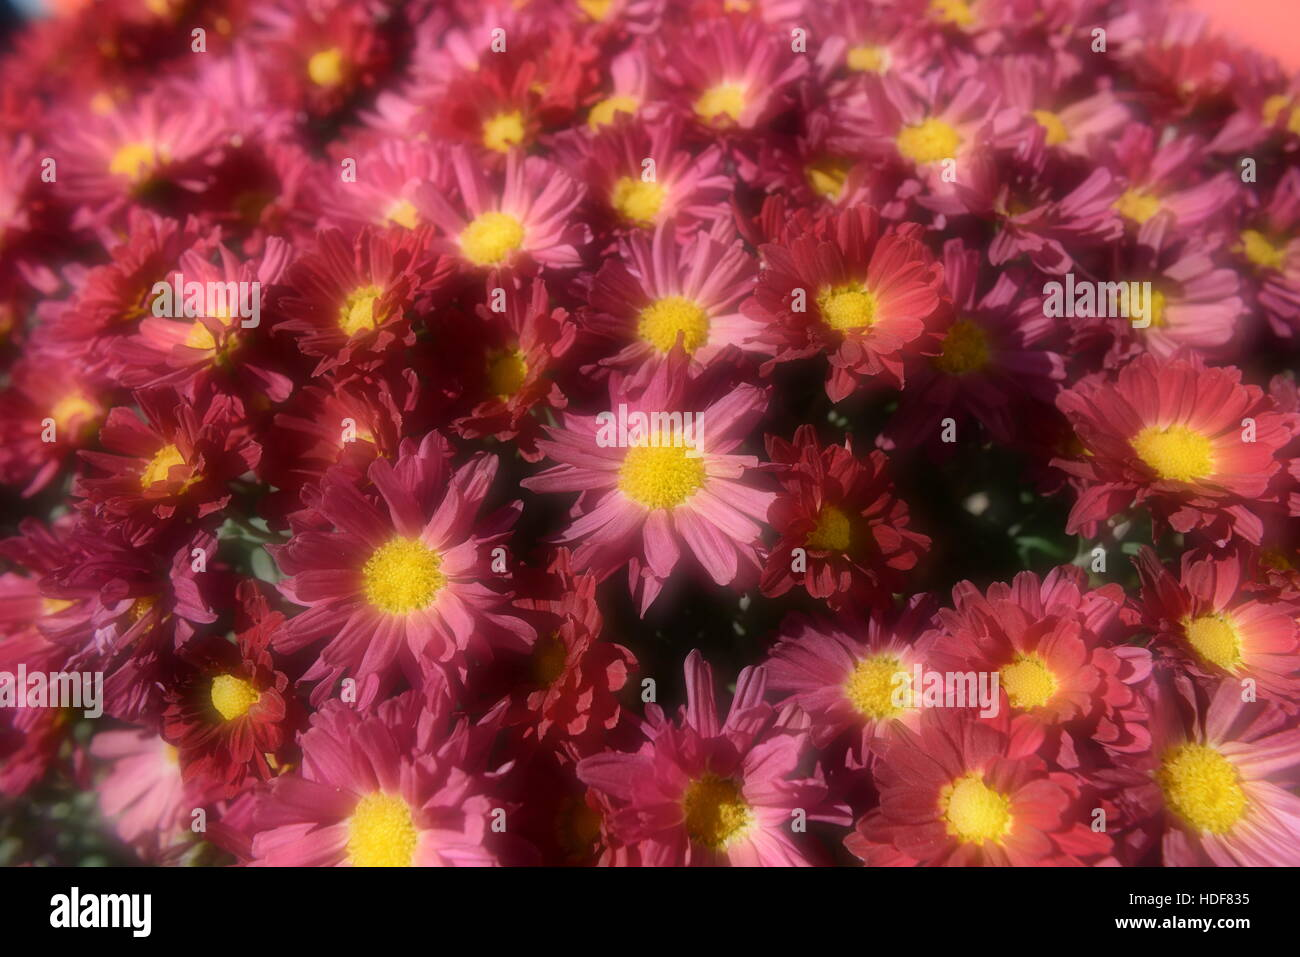 Color enhanced pink flowers! - Stock Image